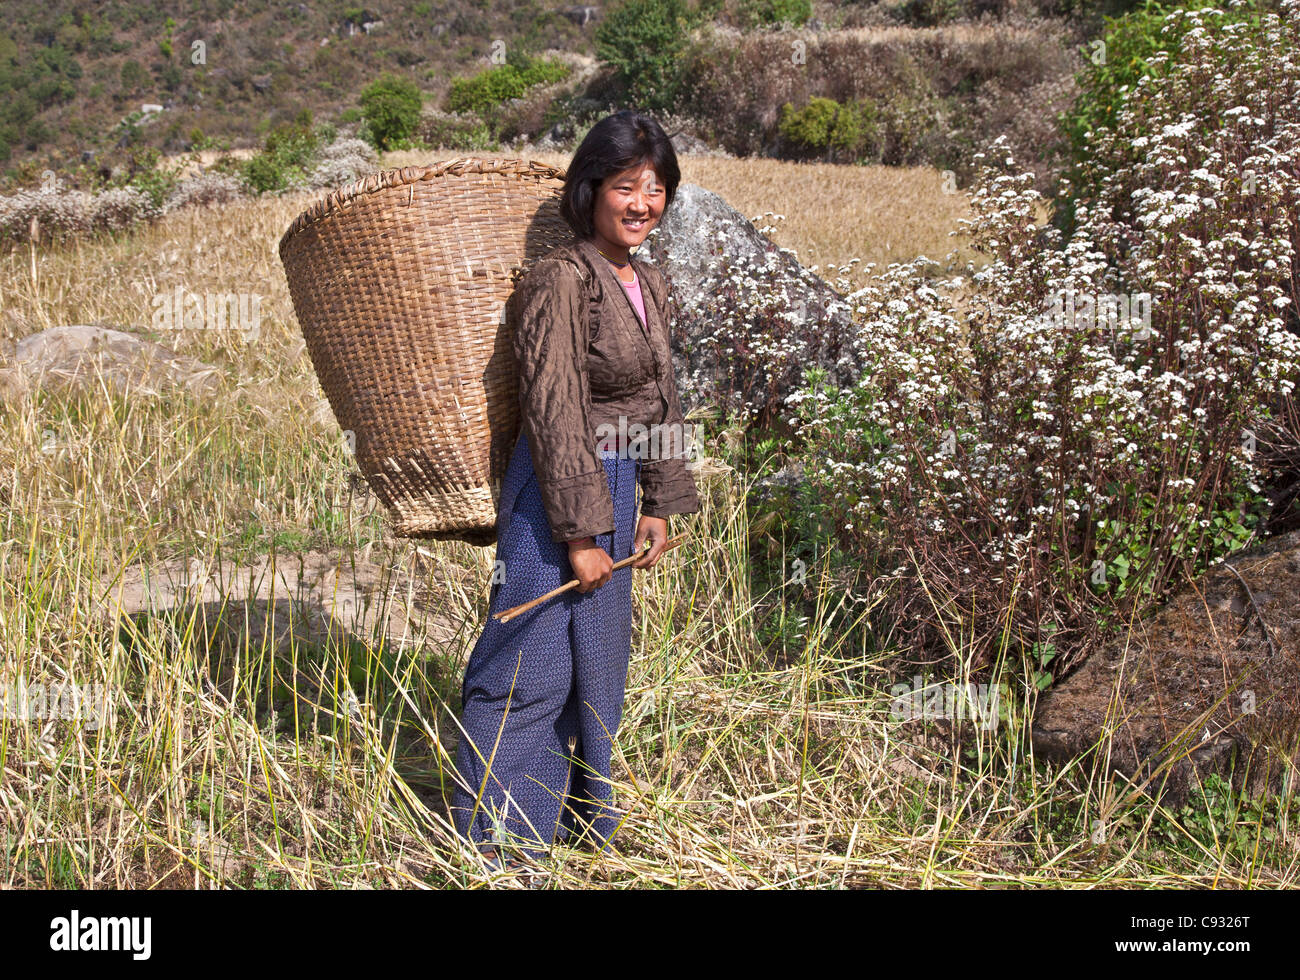 A woman carries ears of corn from her familys hillside farm in the Mangde Chhu Valley in a large bamboo basket. - Stock Image